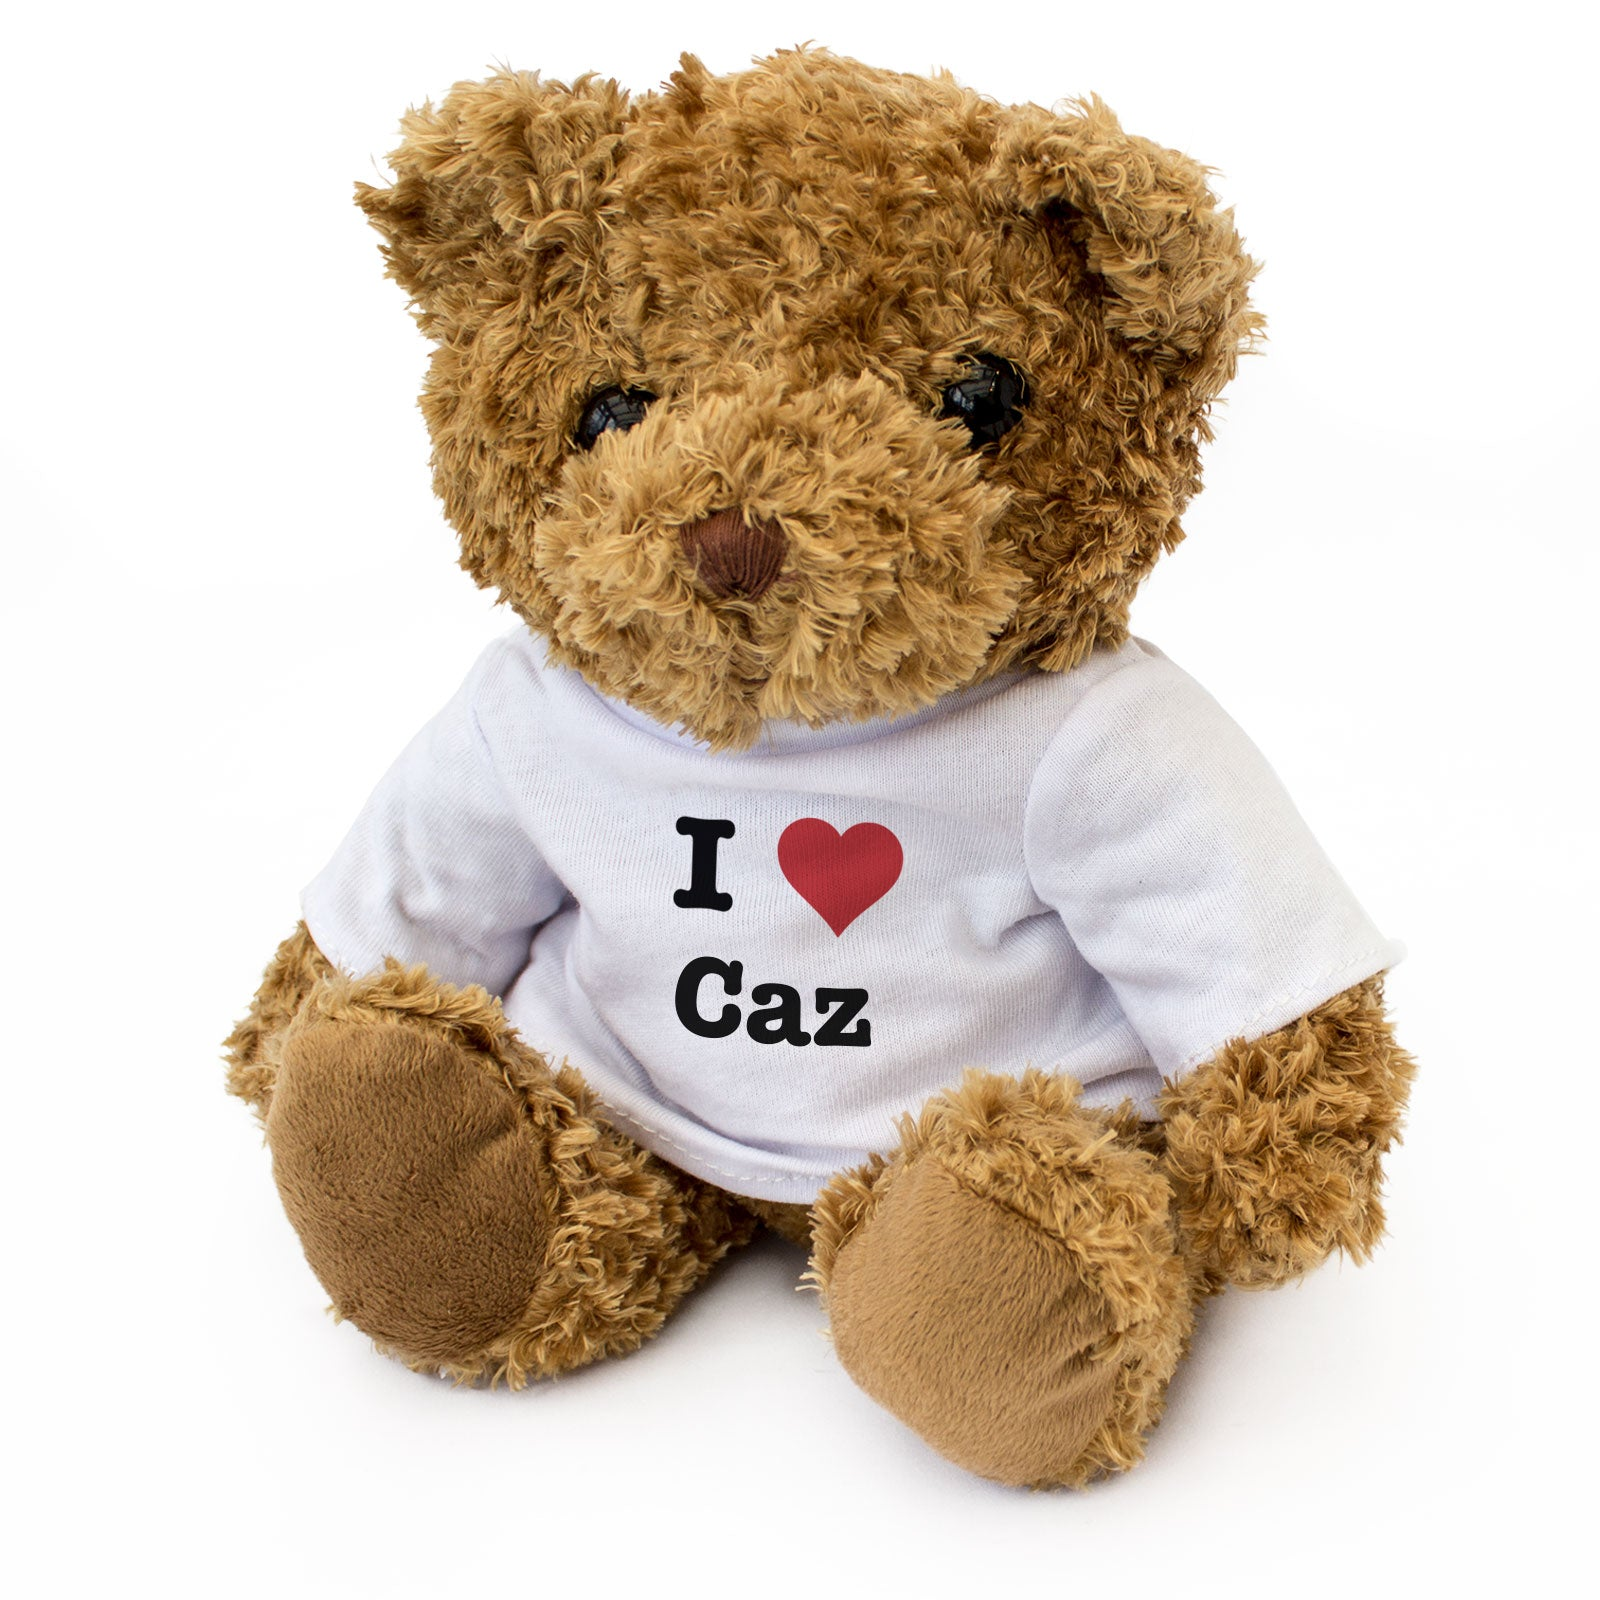 I Love Caz - Teddy Bear